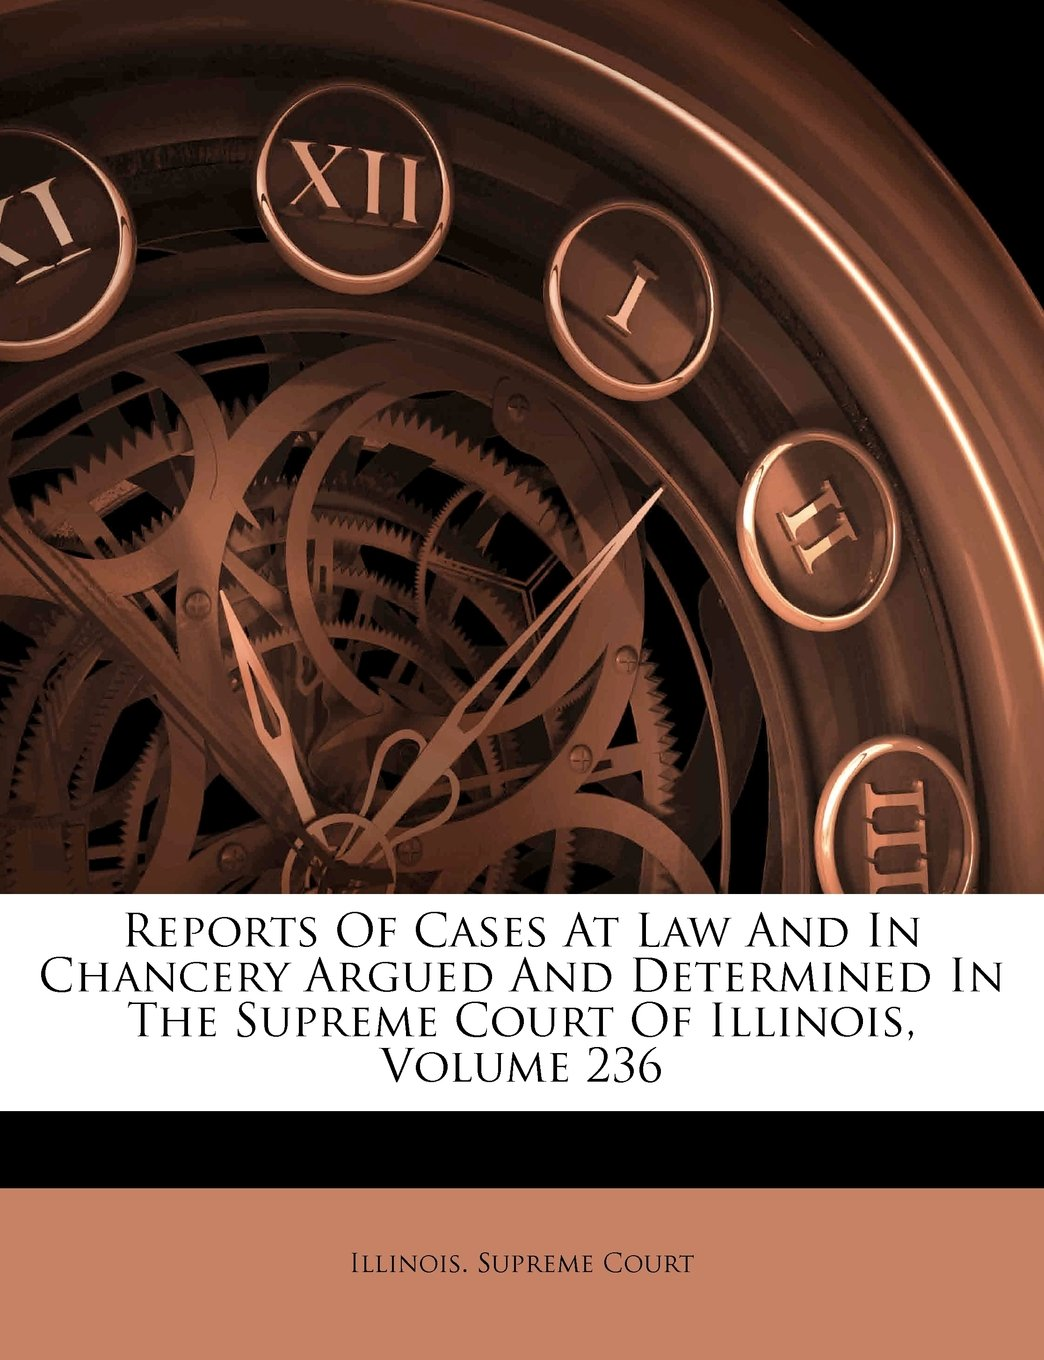 Download Reports of Cases at Law and in Chancery Argued and Determined in the Supreme Court of Illinois, Volume 236 ebook